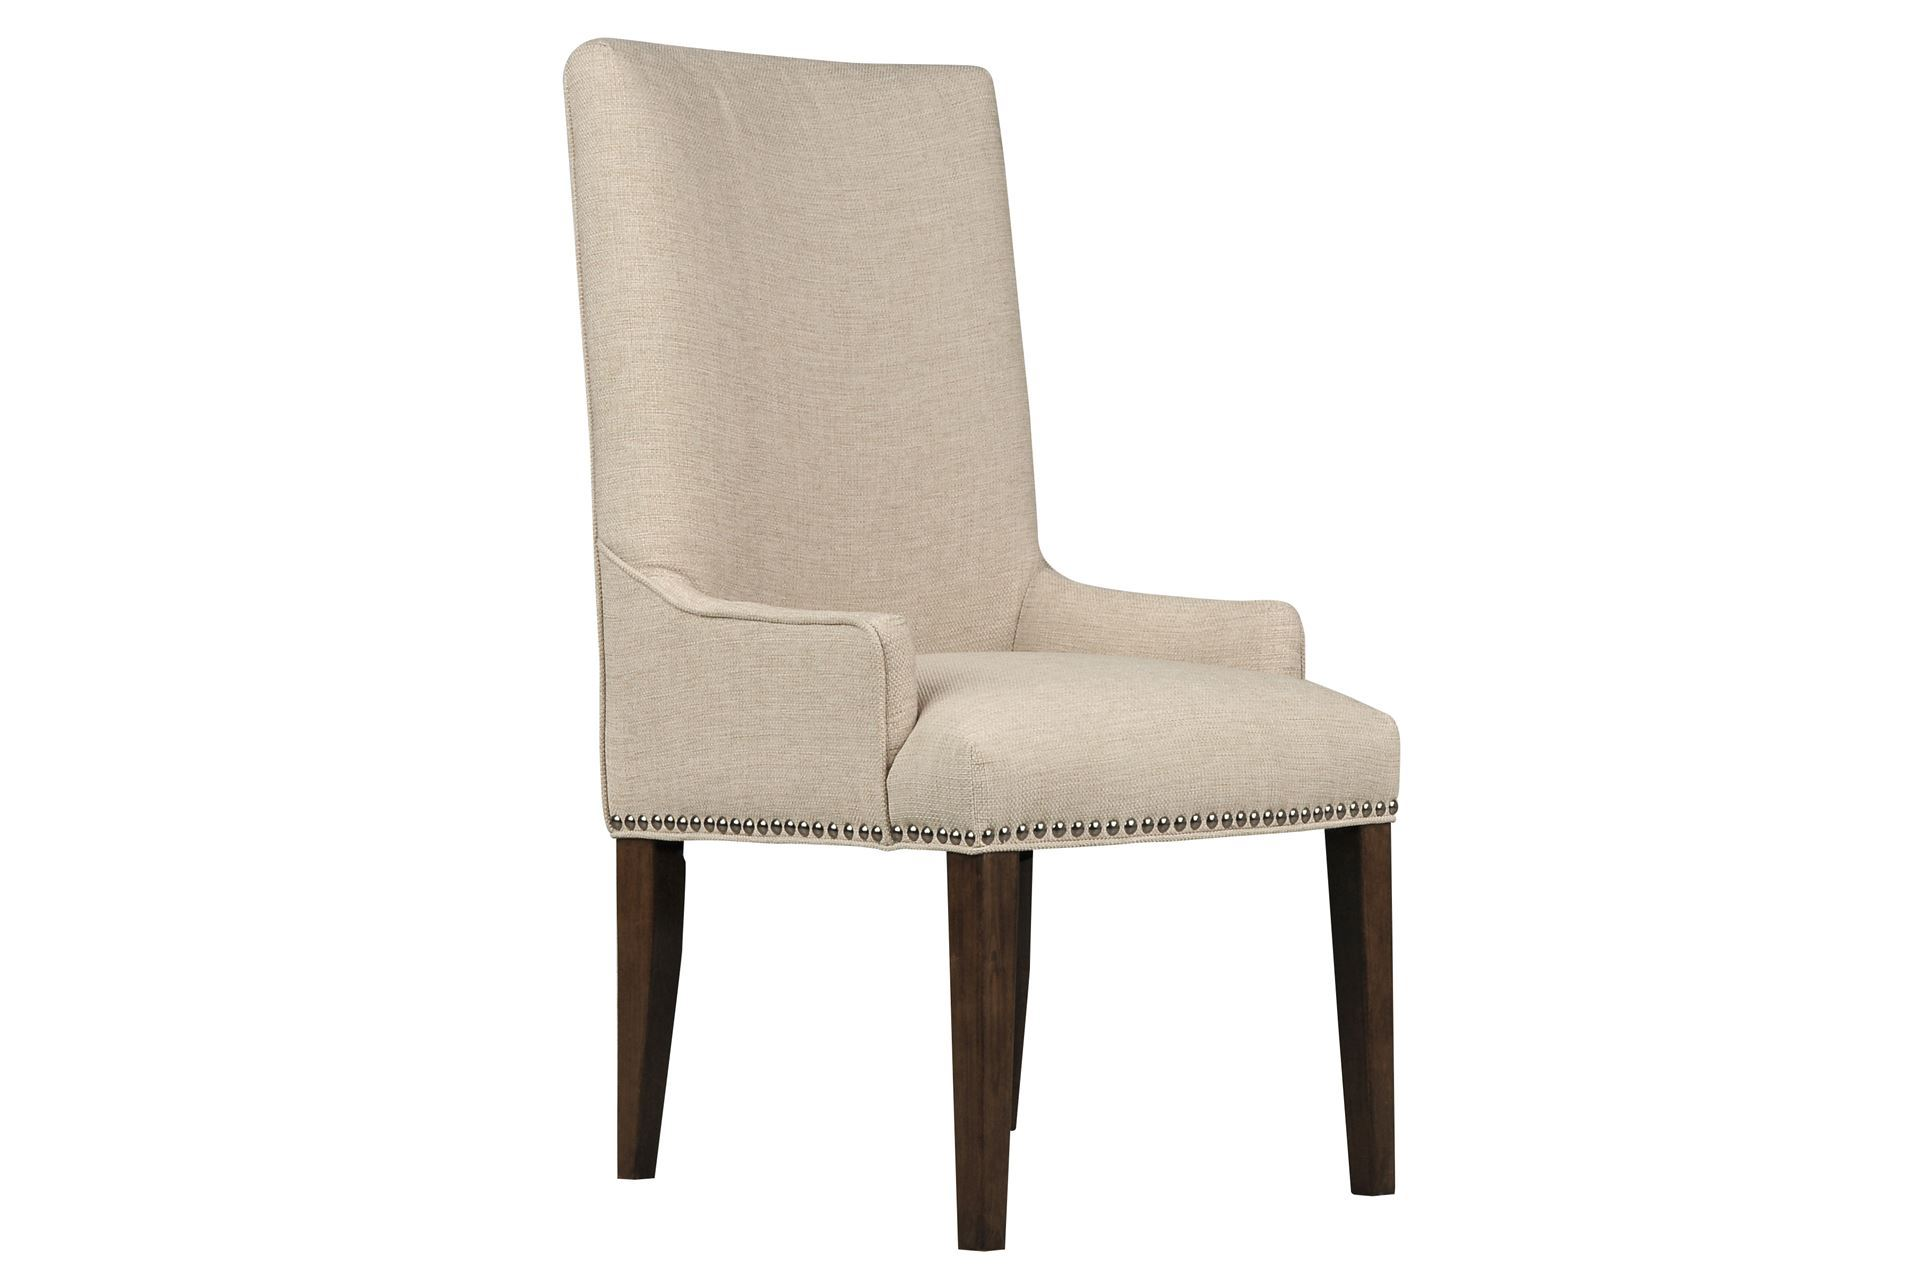 Cooper upholstered side chair living spaces - Upholstered chairs for small spaces concept ...